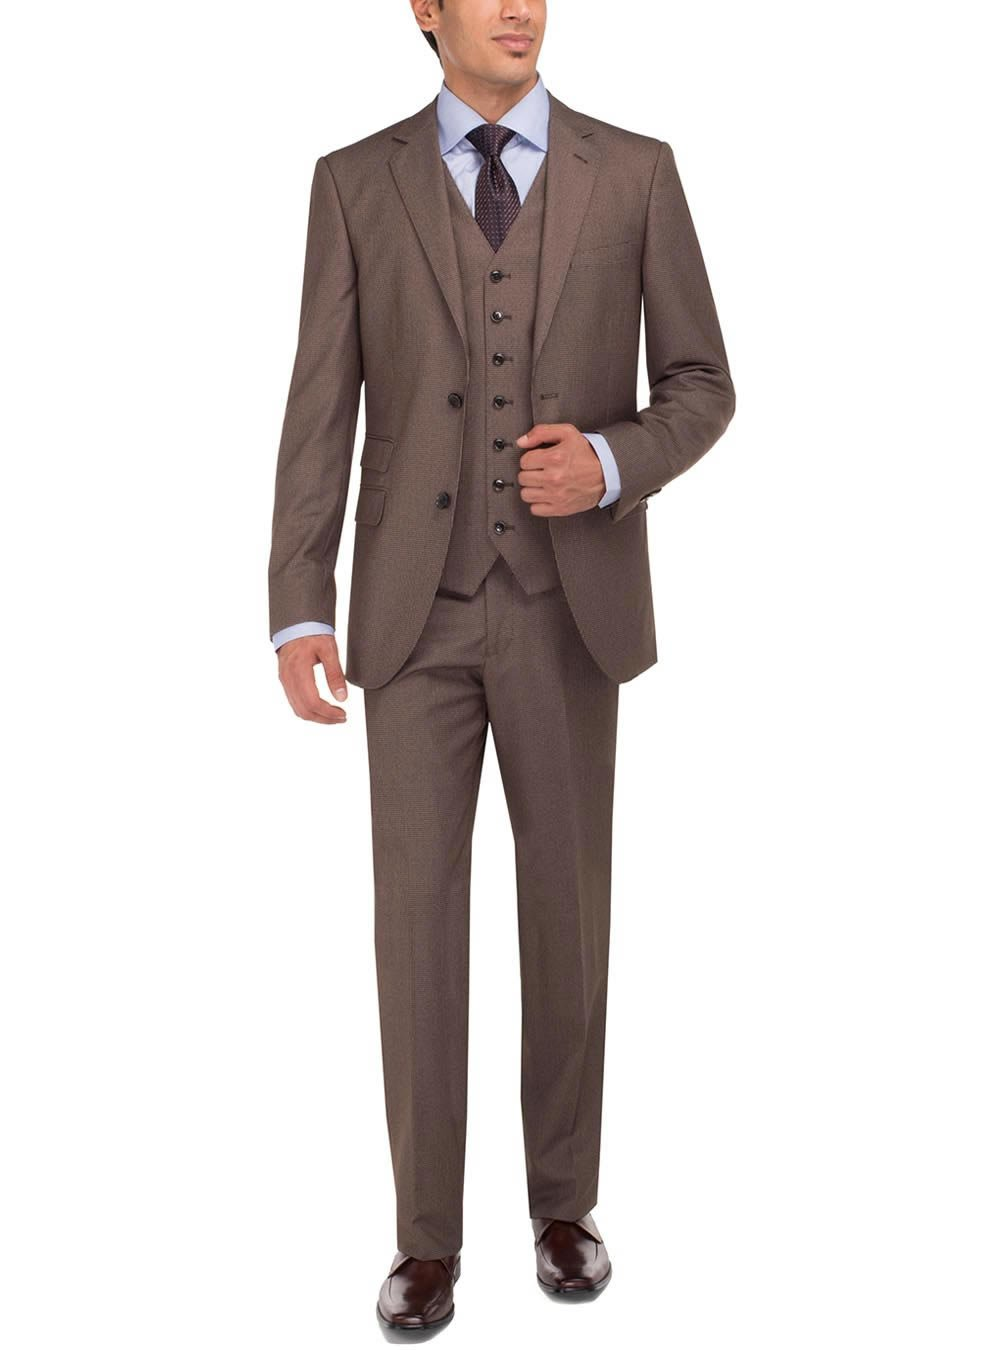 Luciano Natazzi Men's Two Button Tweed 3 Piece Modern Fit Vested Suit (36 Short US / 46 Short EU, Lt. Brown)